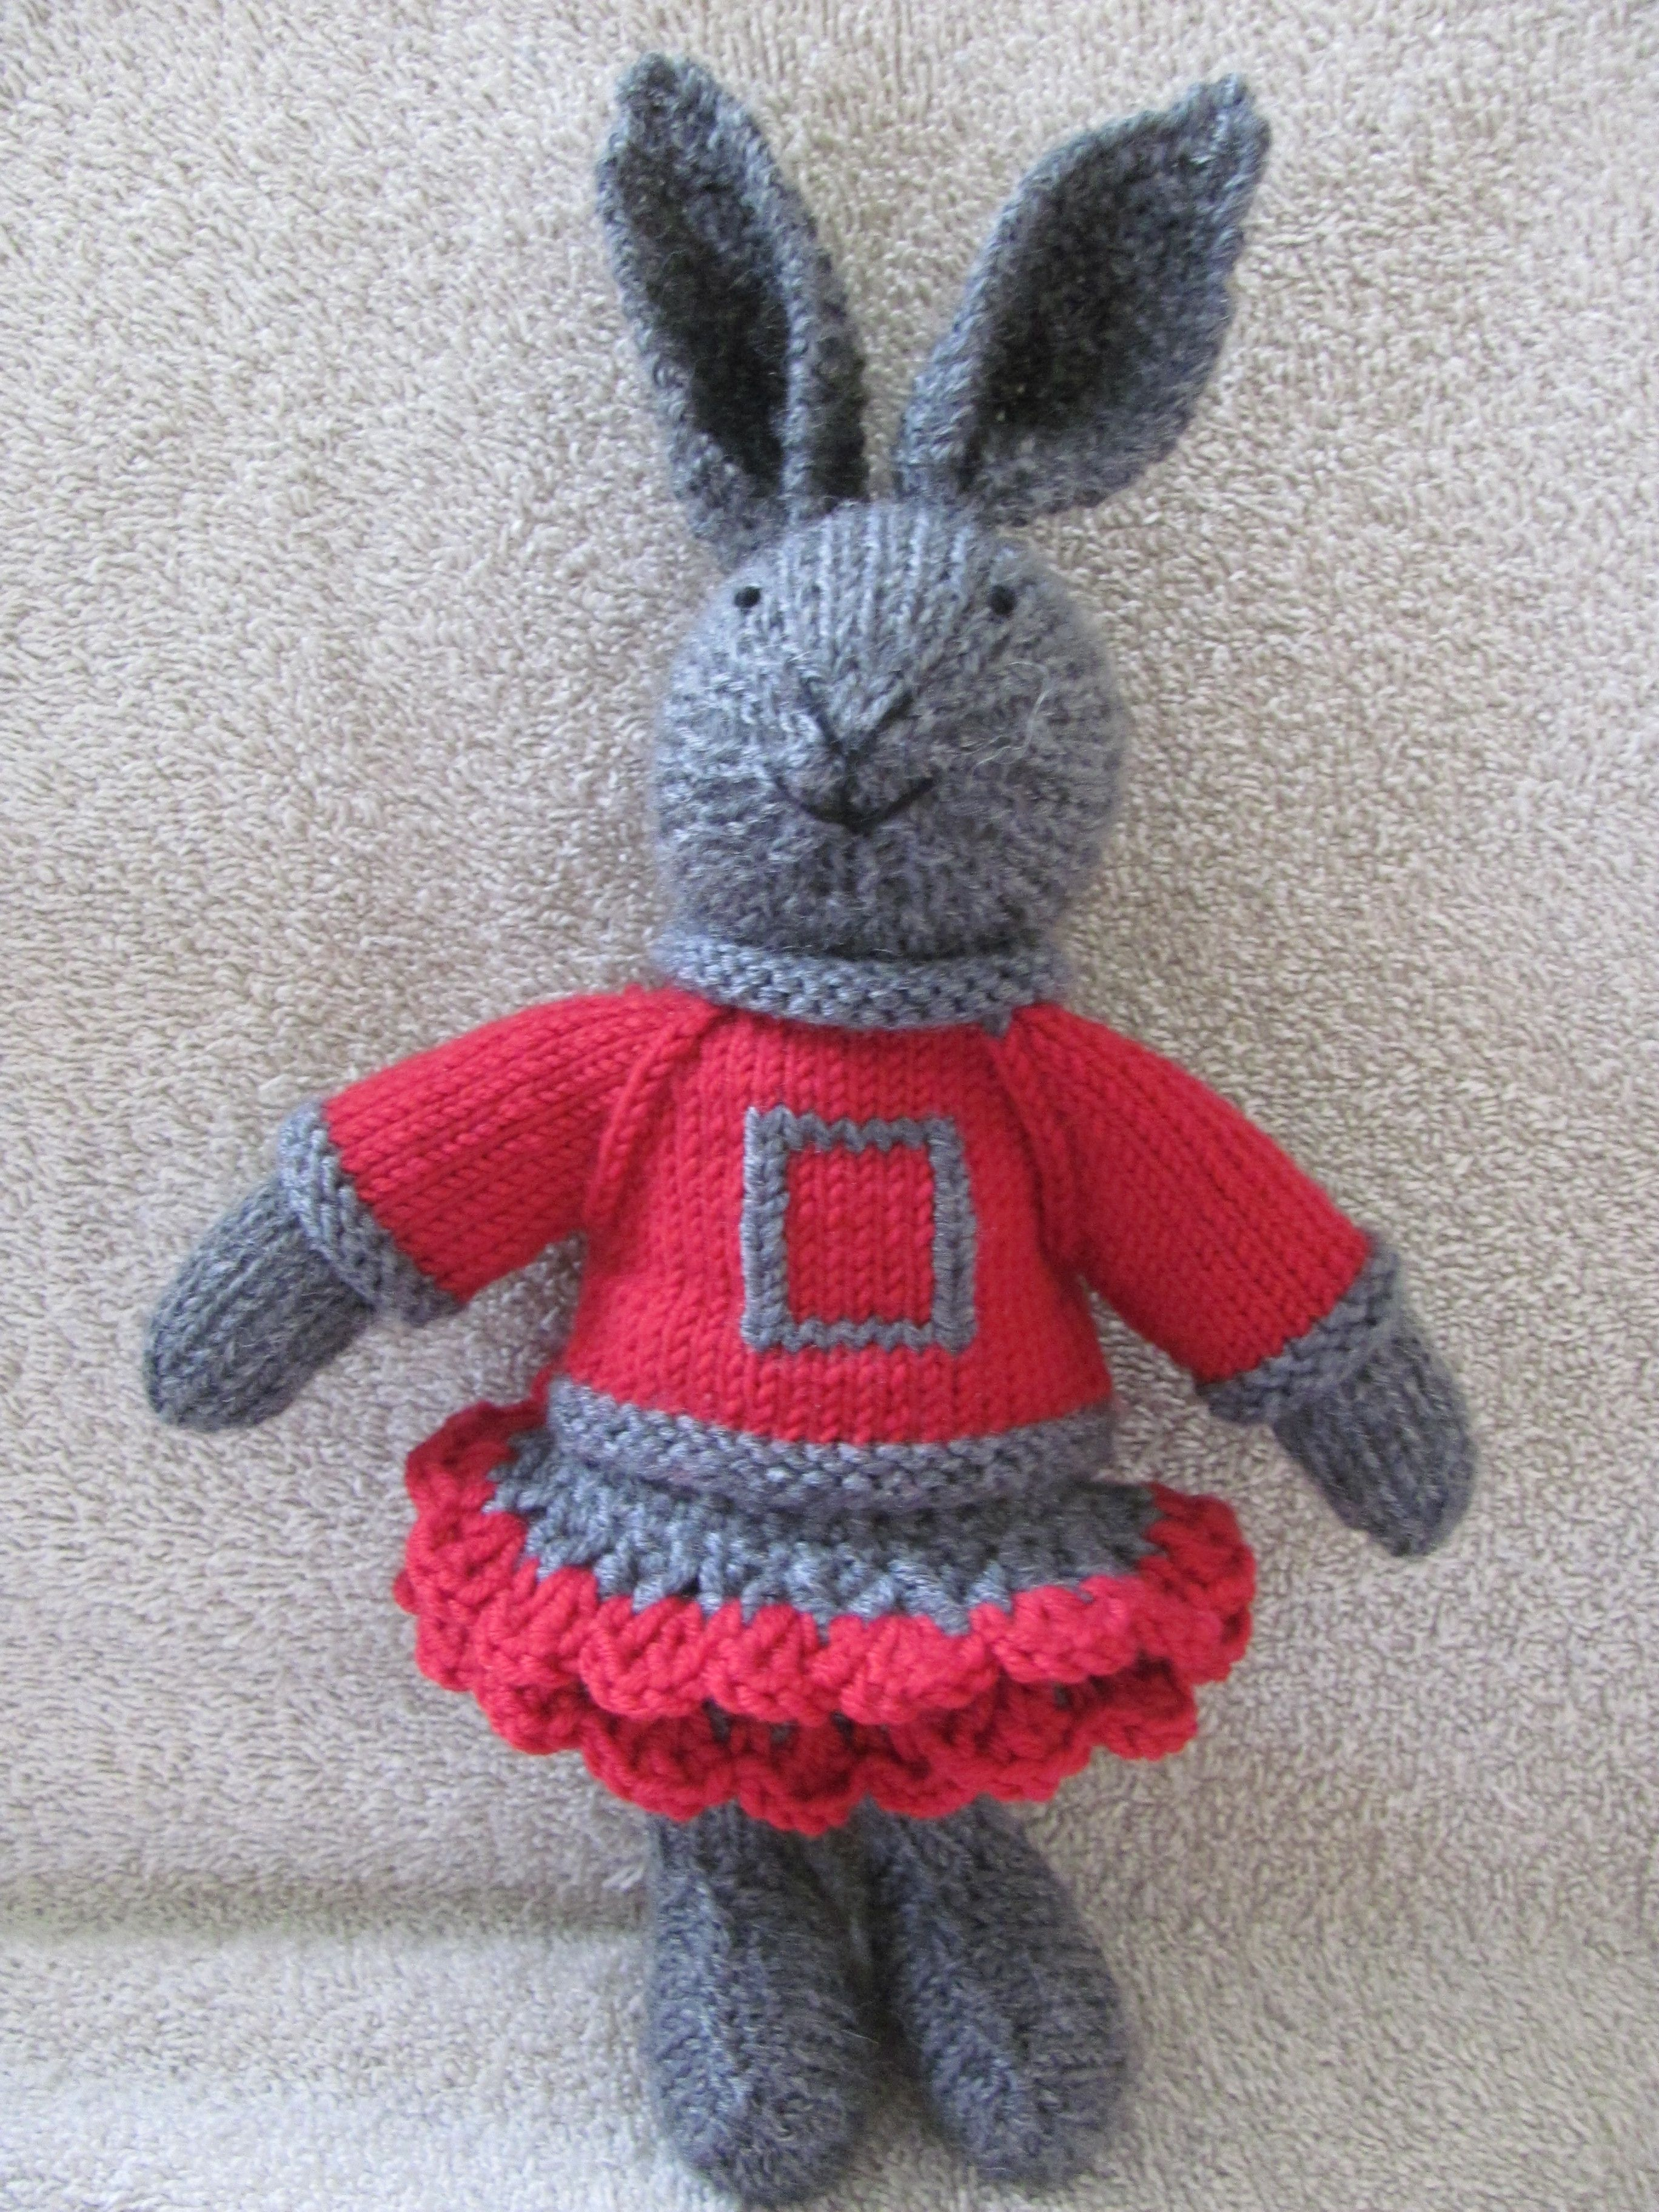 The Ohio State University Bunny Cheerleader